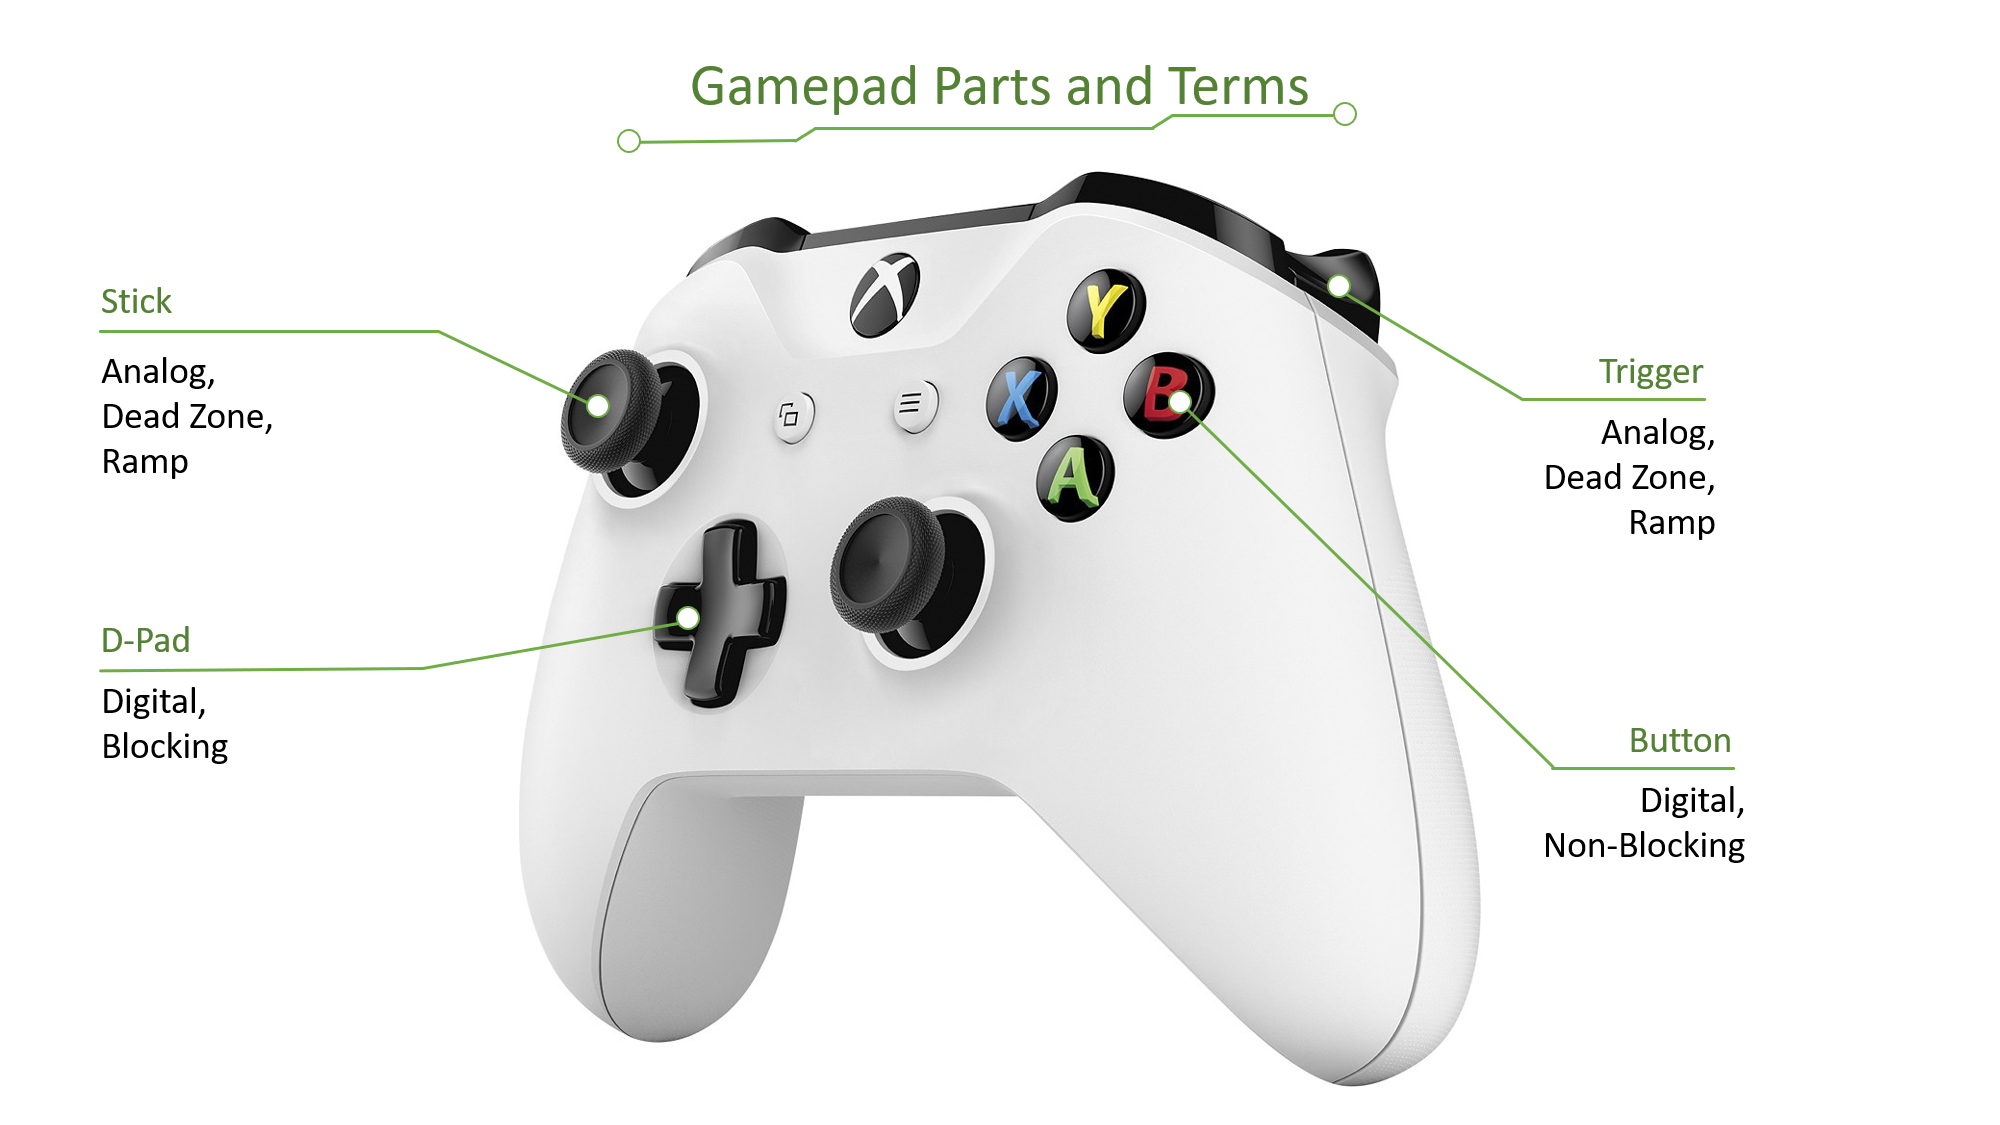 Gamepad Parts and Terms